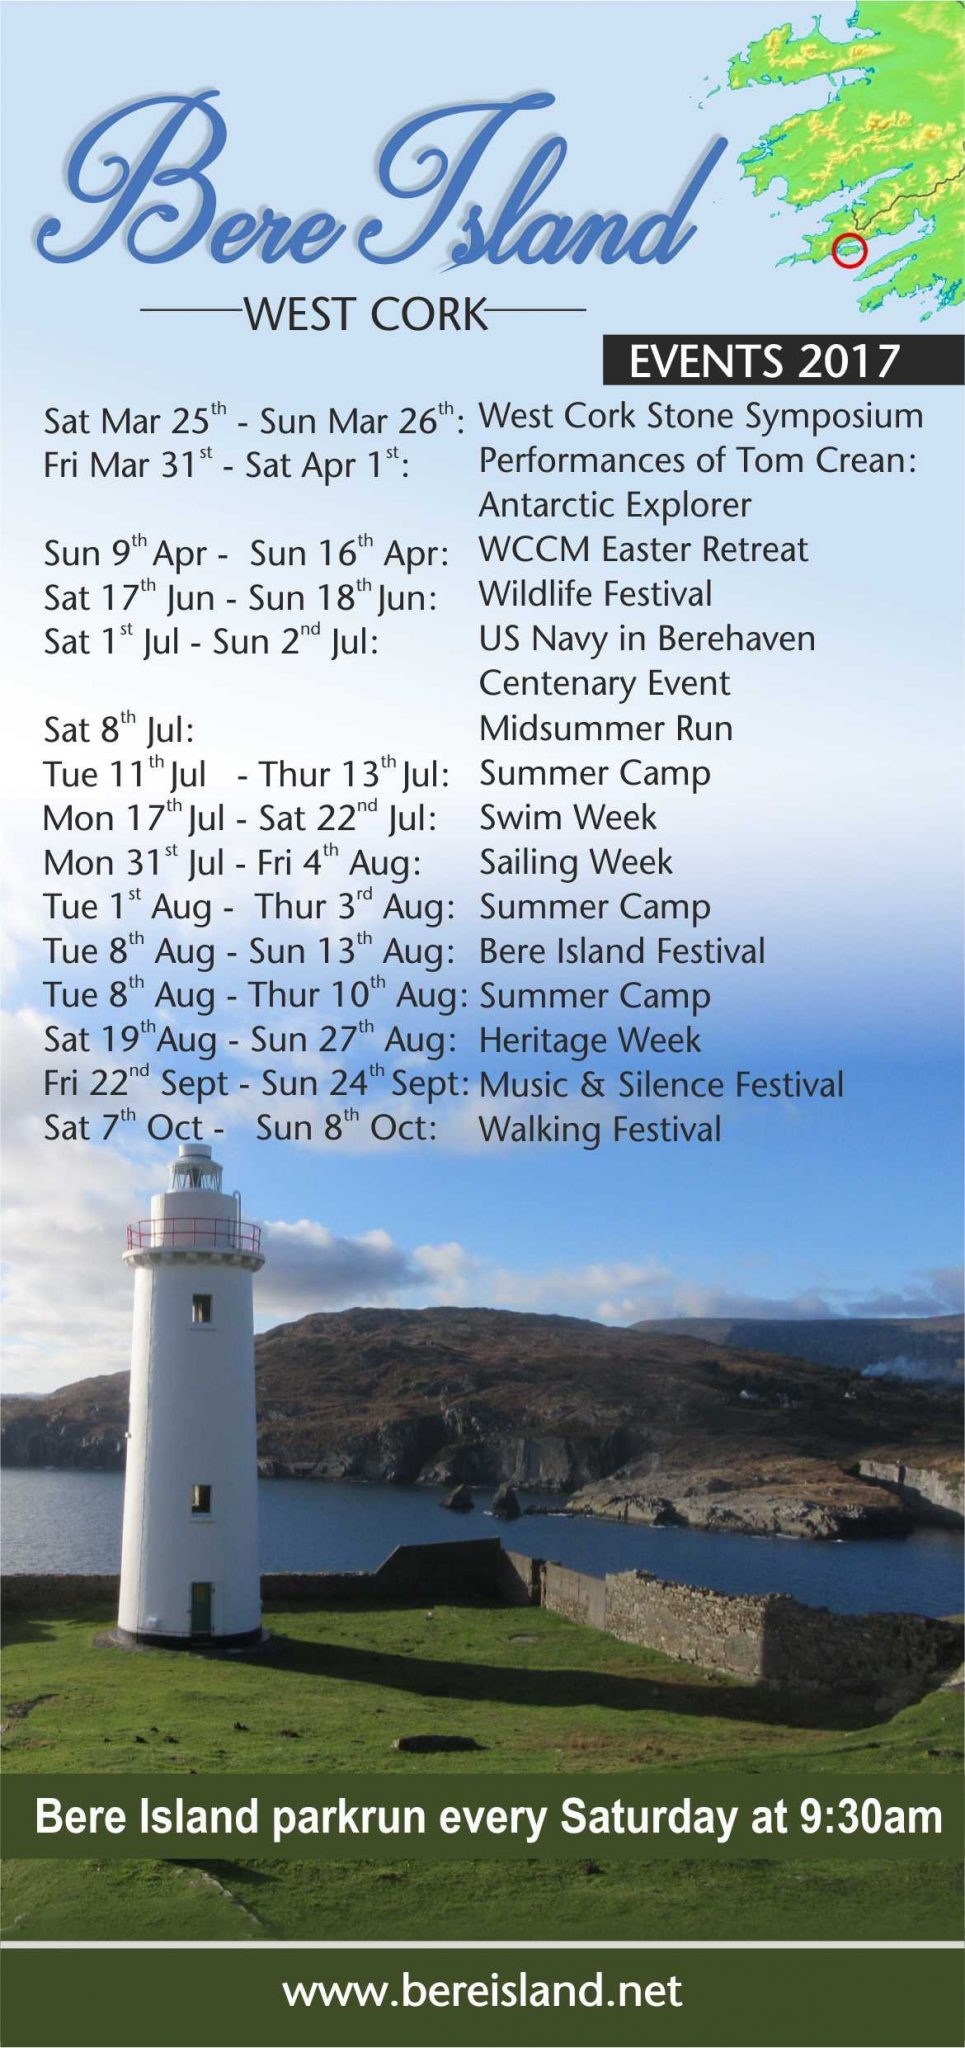 Bere Island Events 2017